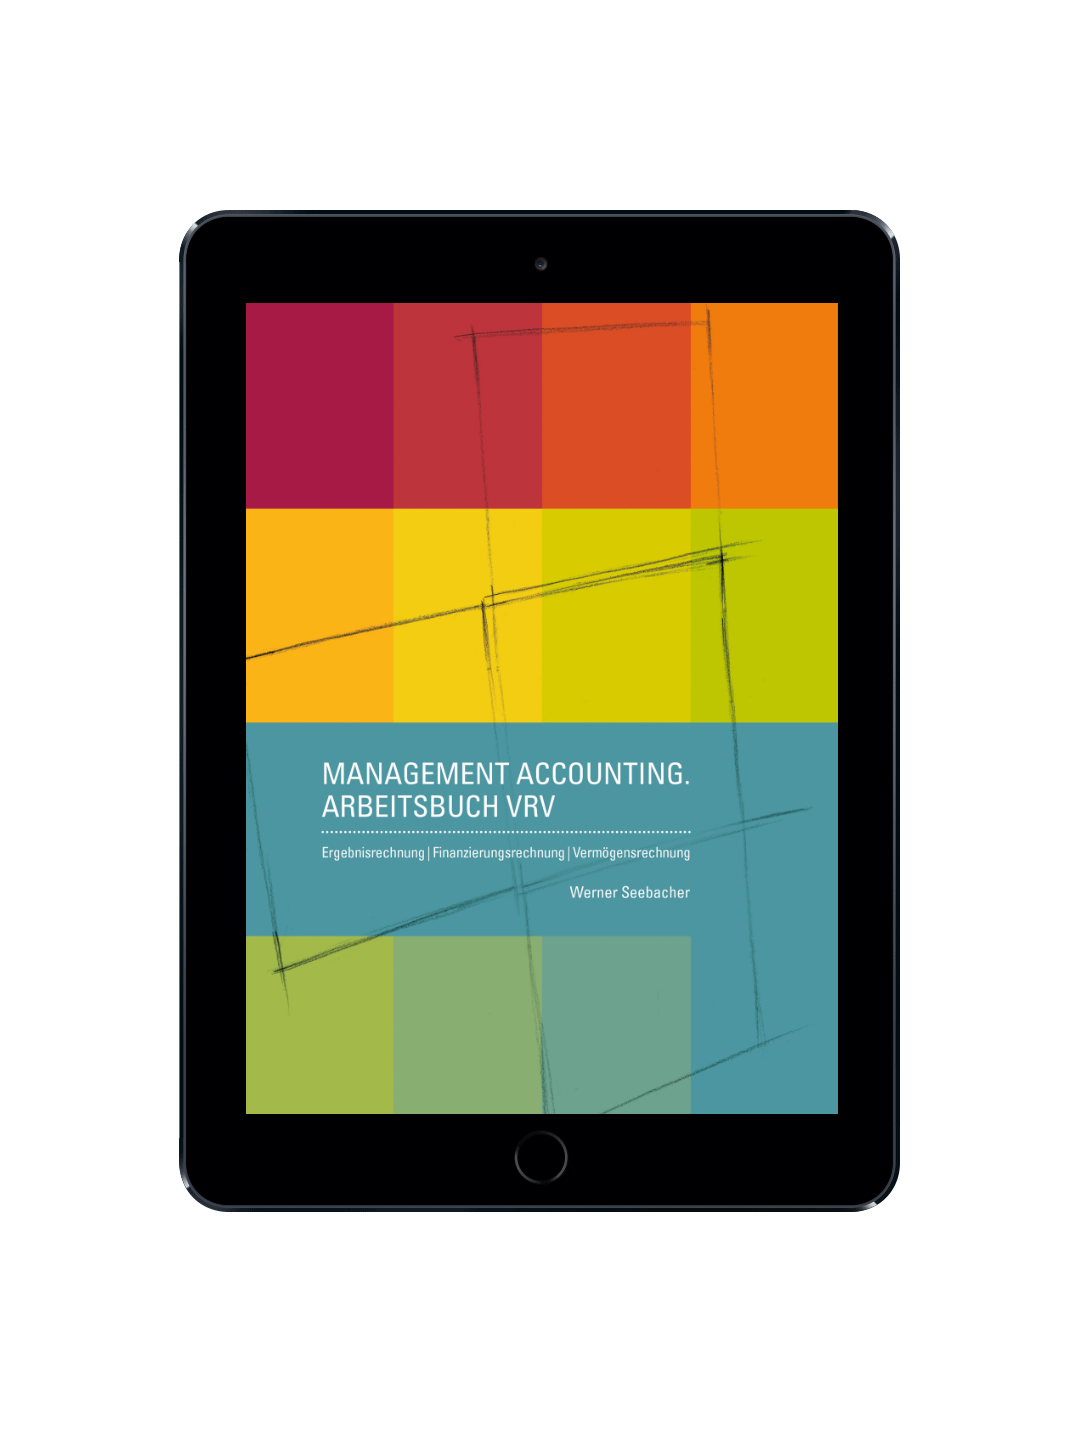 Management Accounting. Arbeitsbuch VRV – ebook